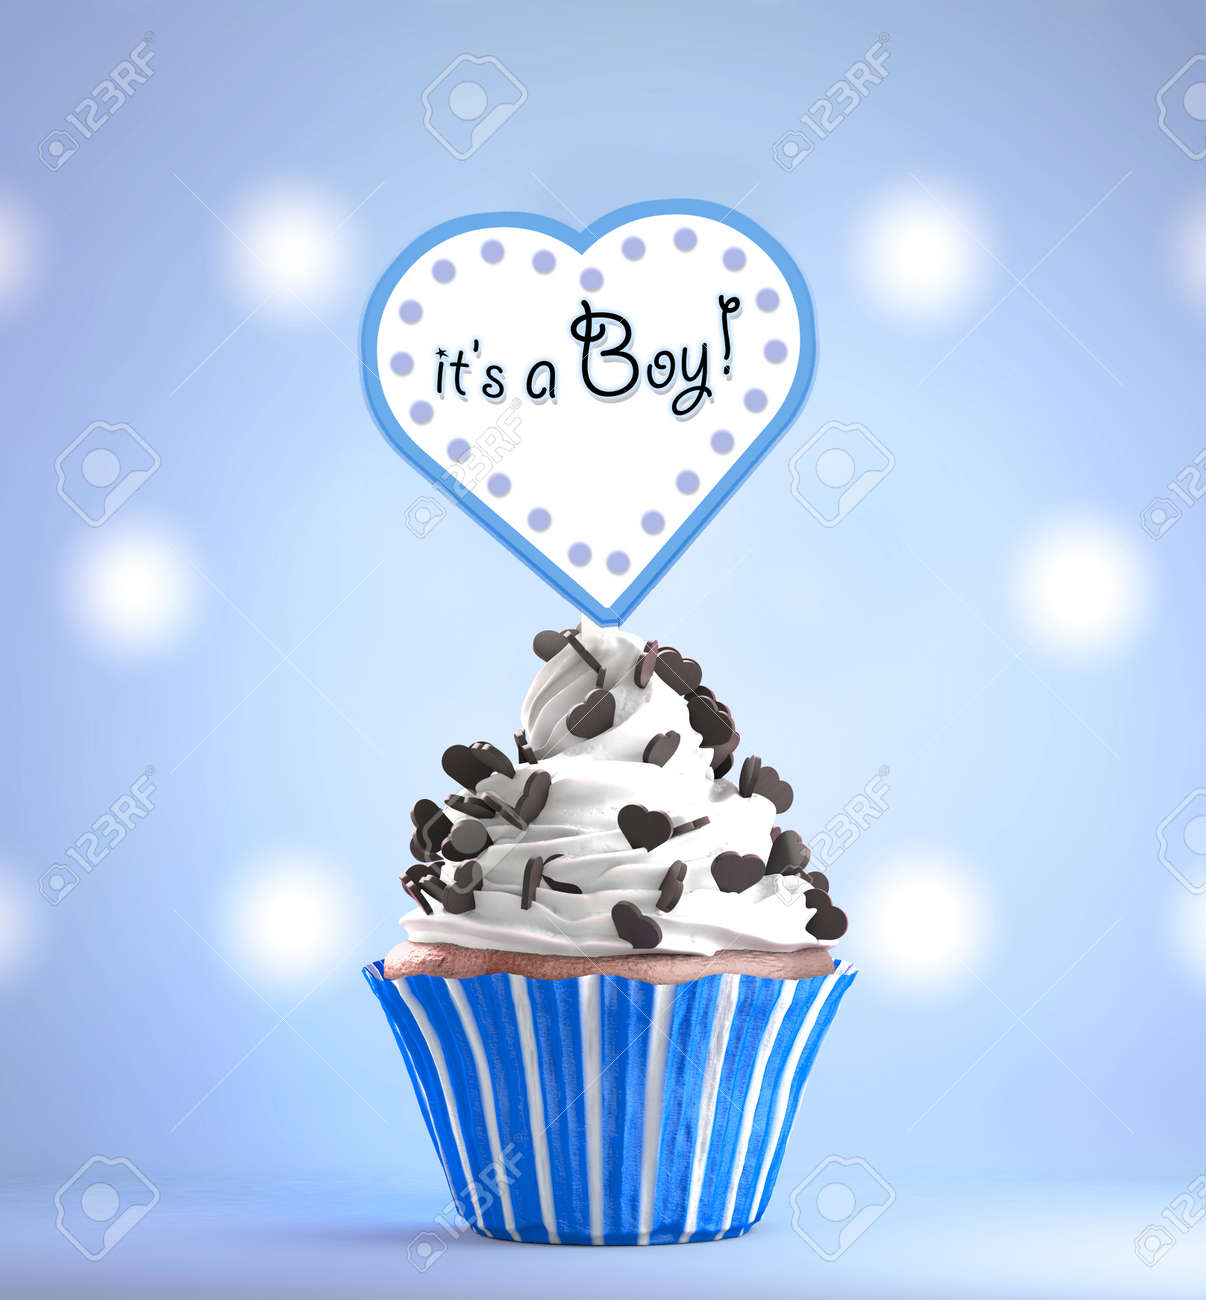 Newborn Baby Boy Card Message On A Delicious Cupcake With Chocolate